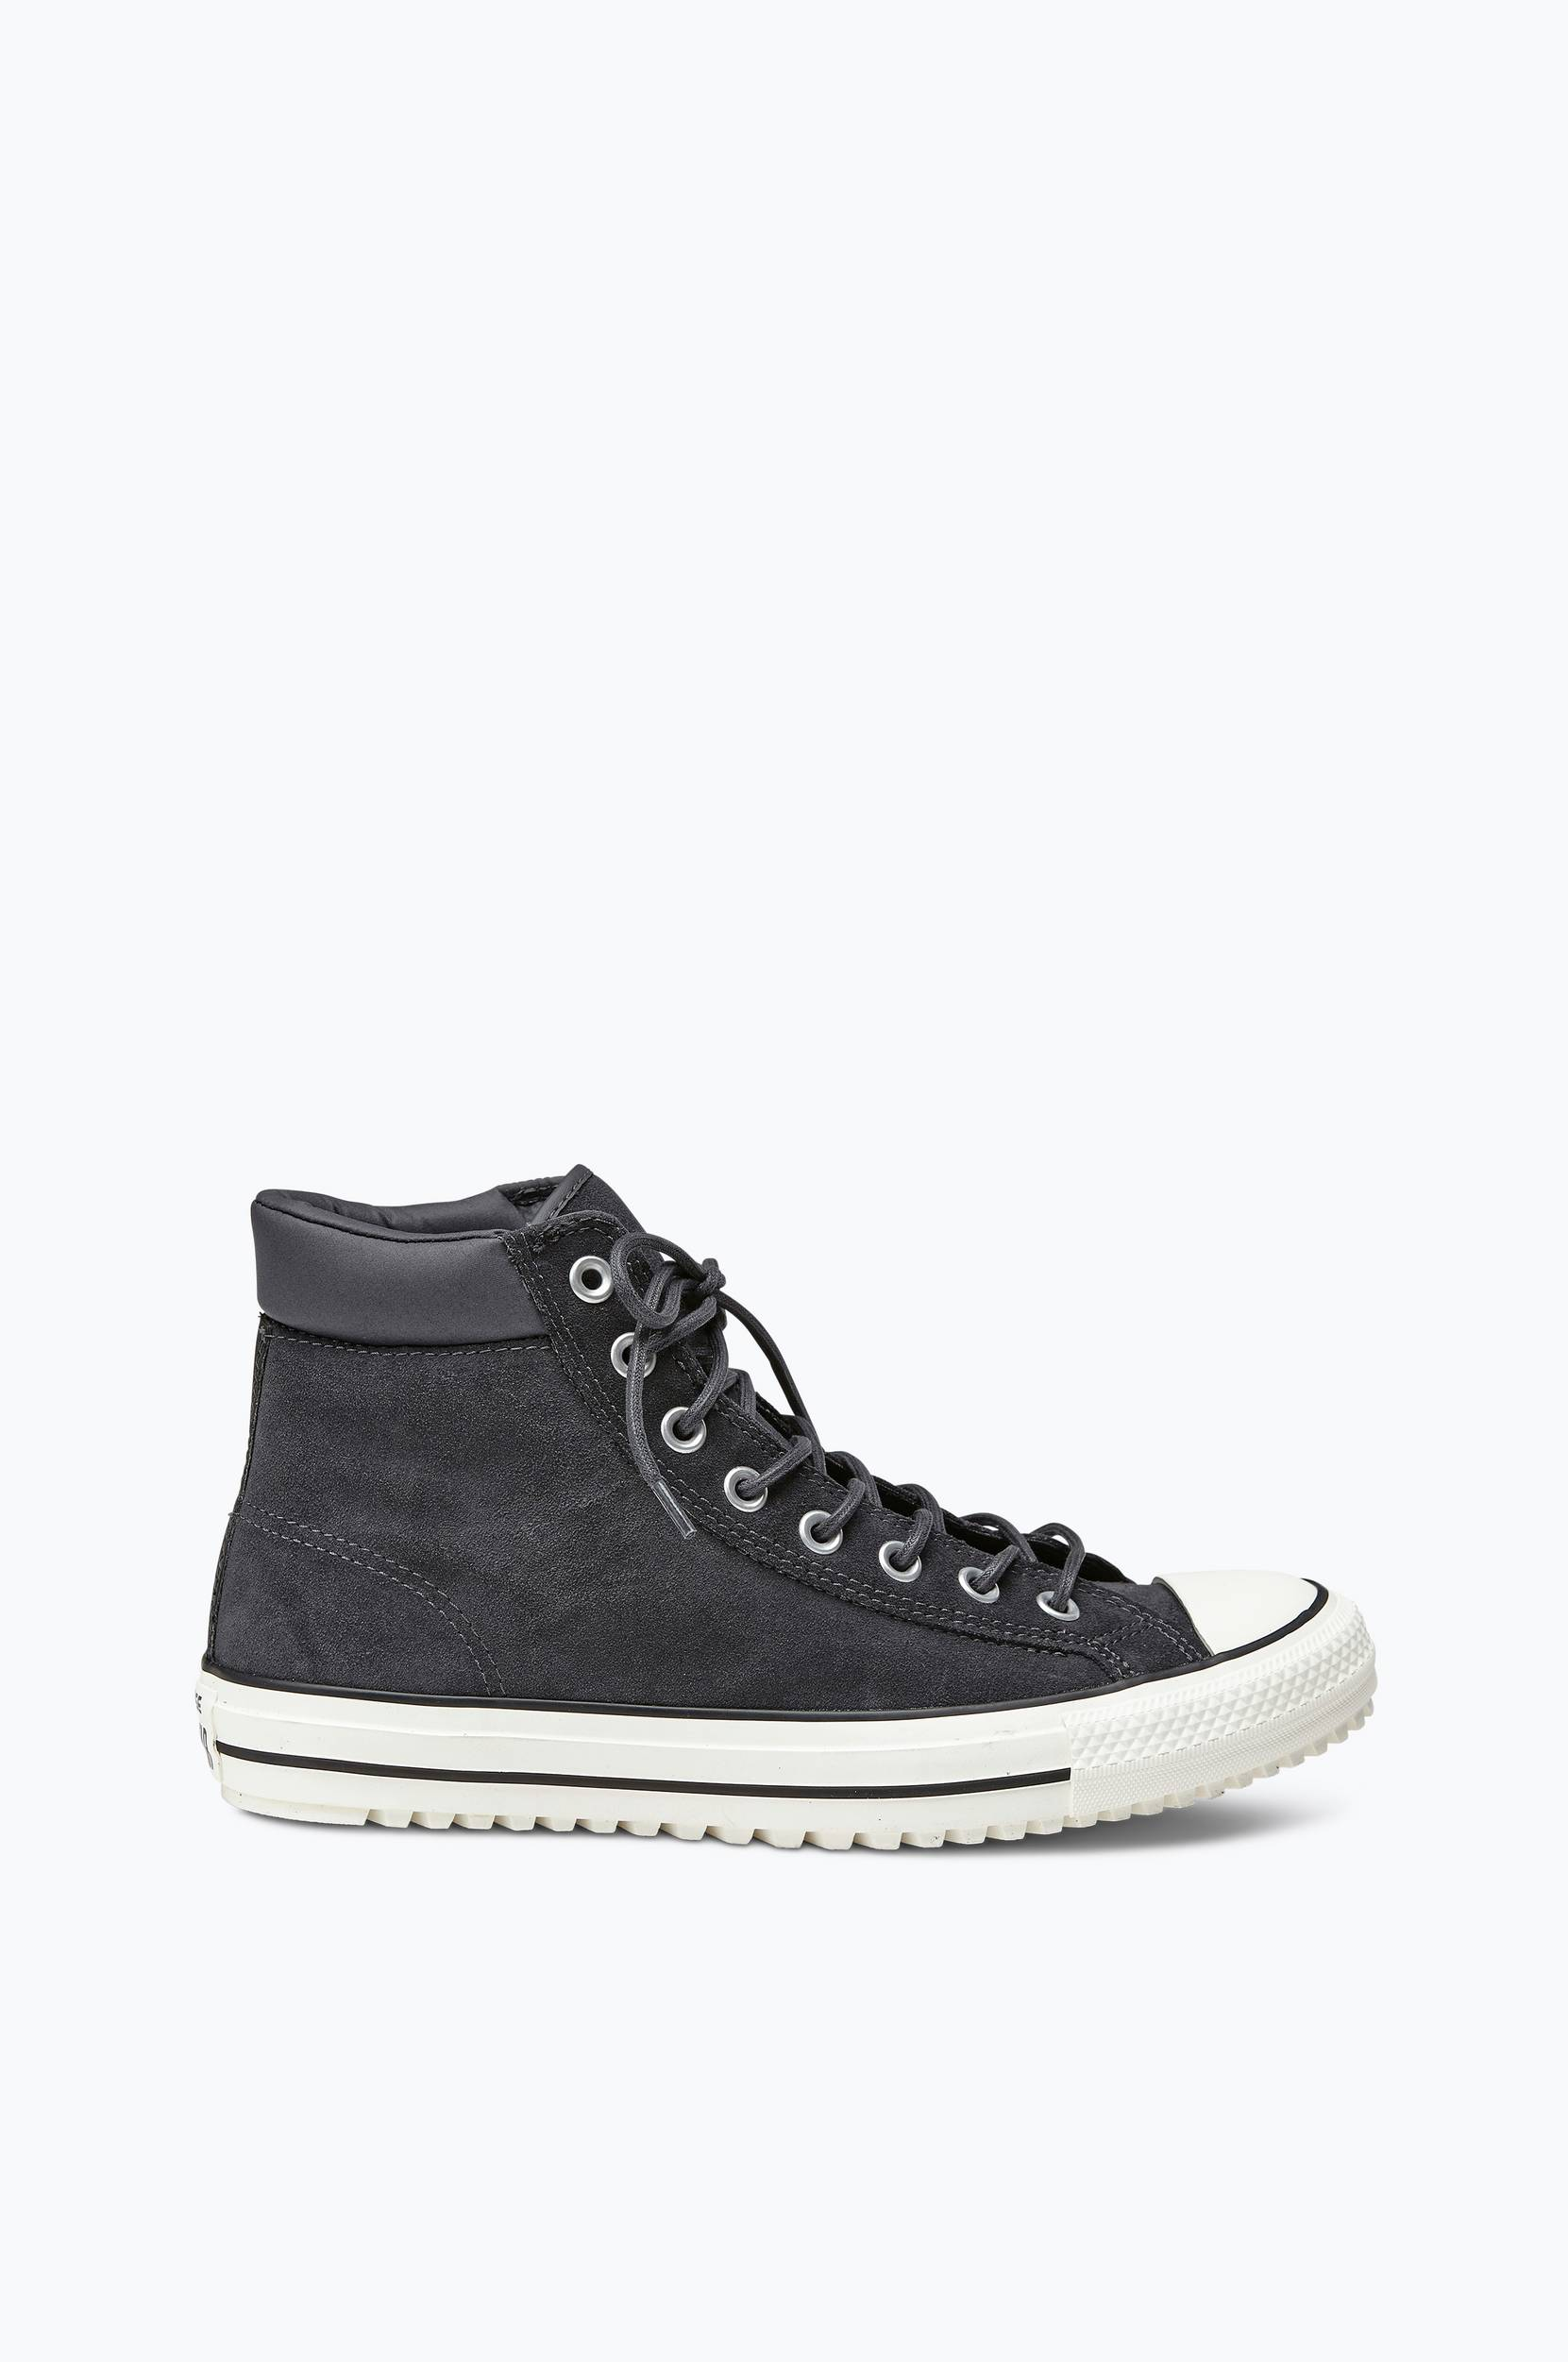 Sneakers All Star Converse Boot Converse Sneakers til Mænd i Sort